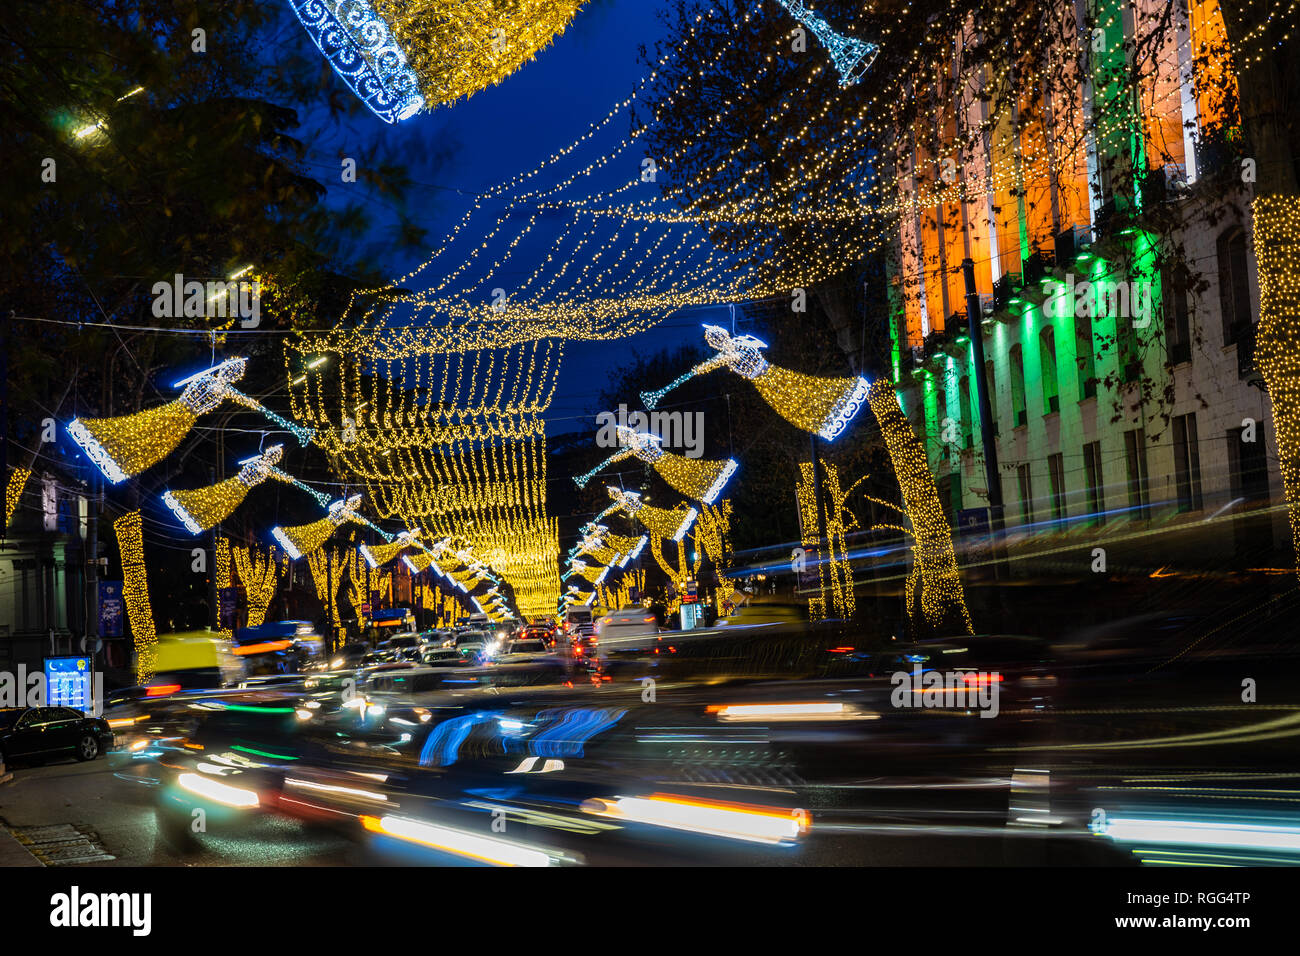 Christmas In Georgia Tbilisi.Georgia Tbilisi Christmas And New 2019 Year Illumination